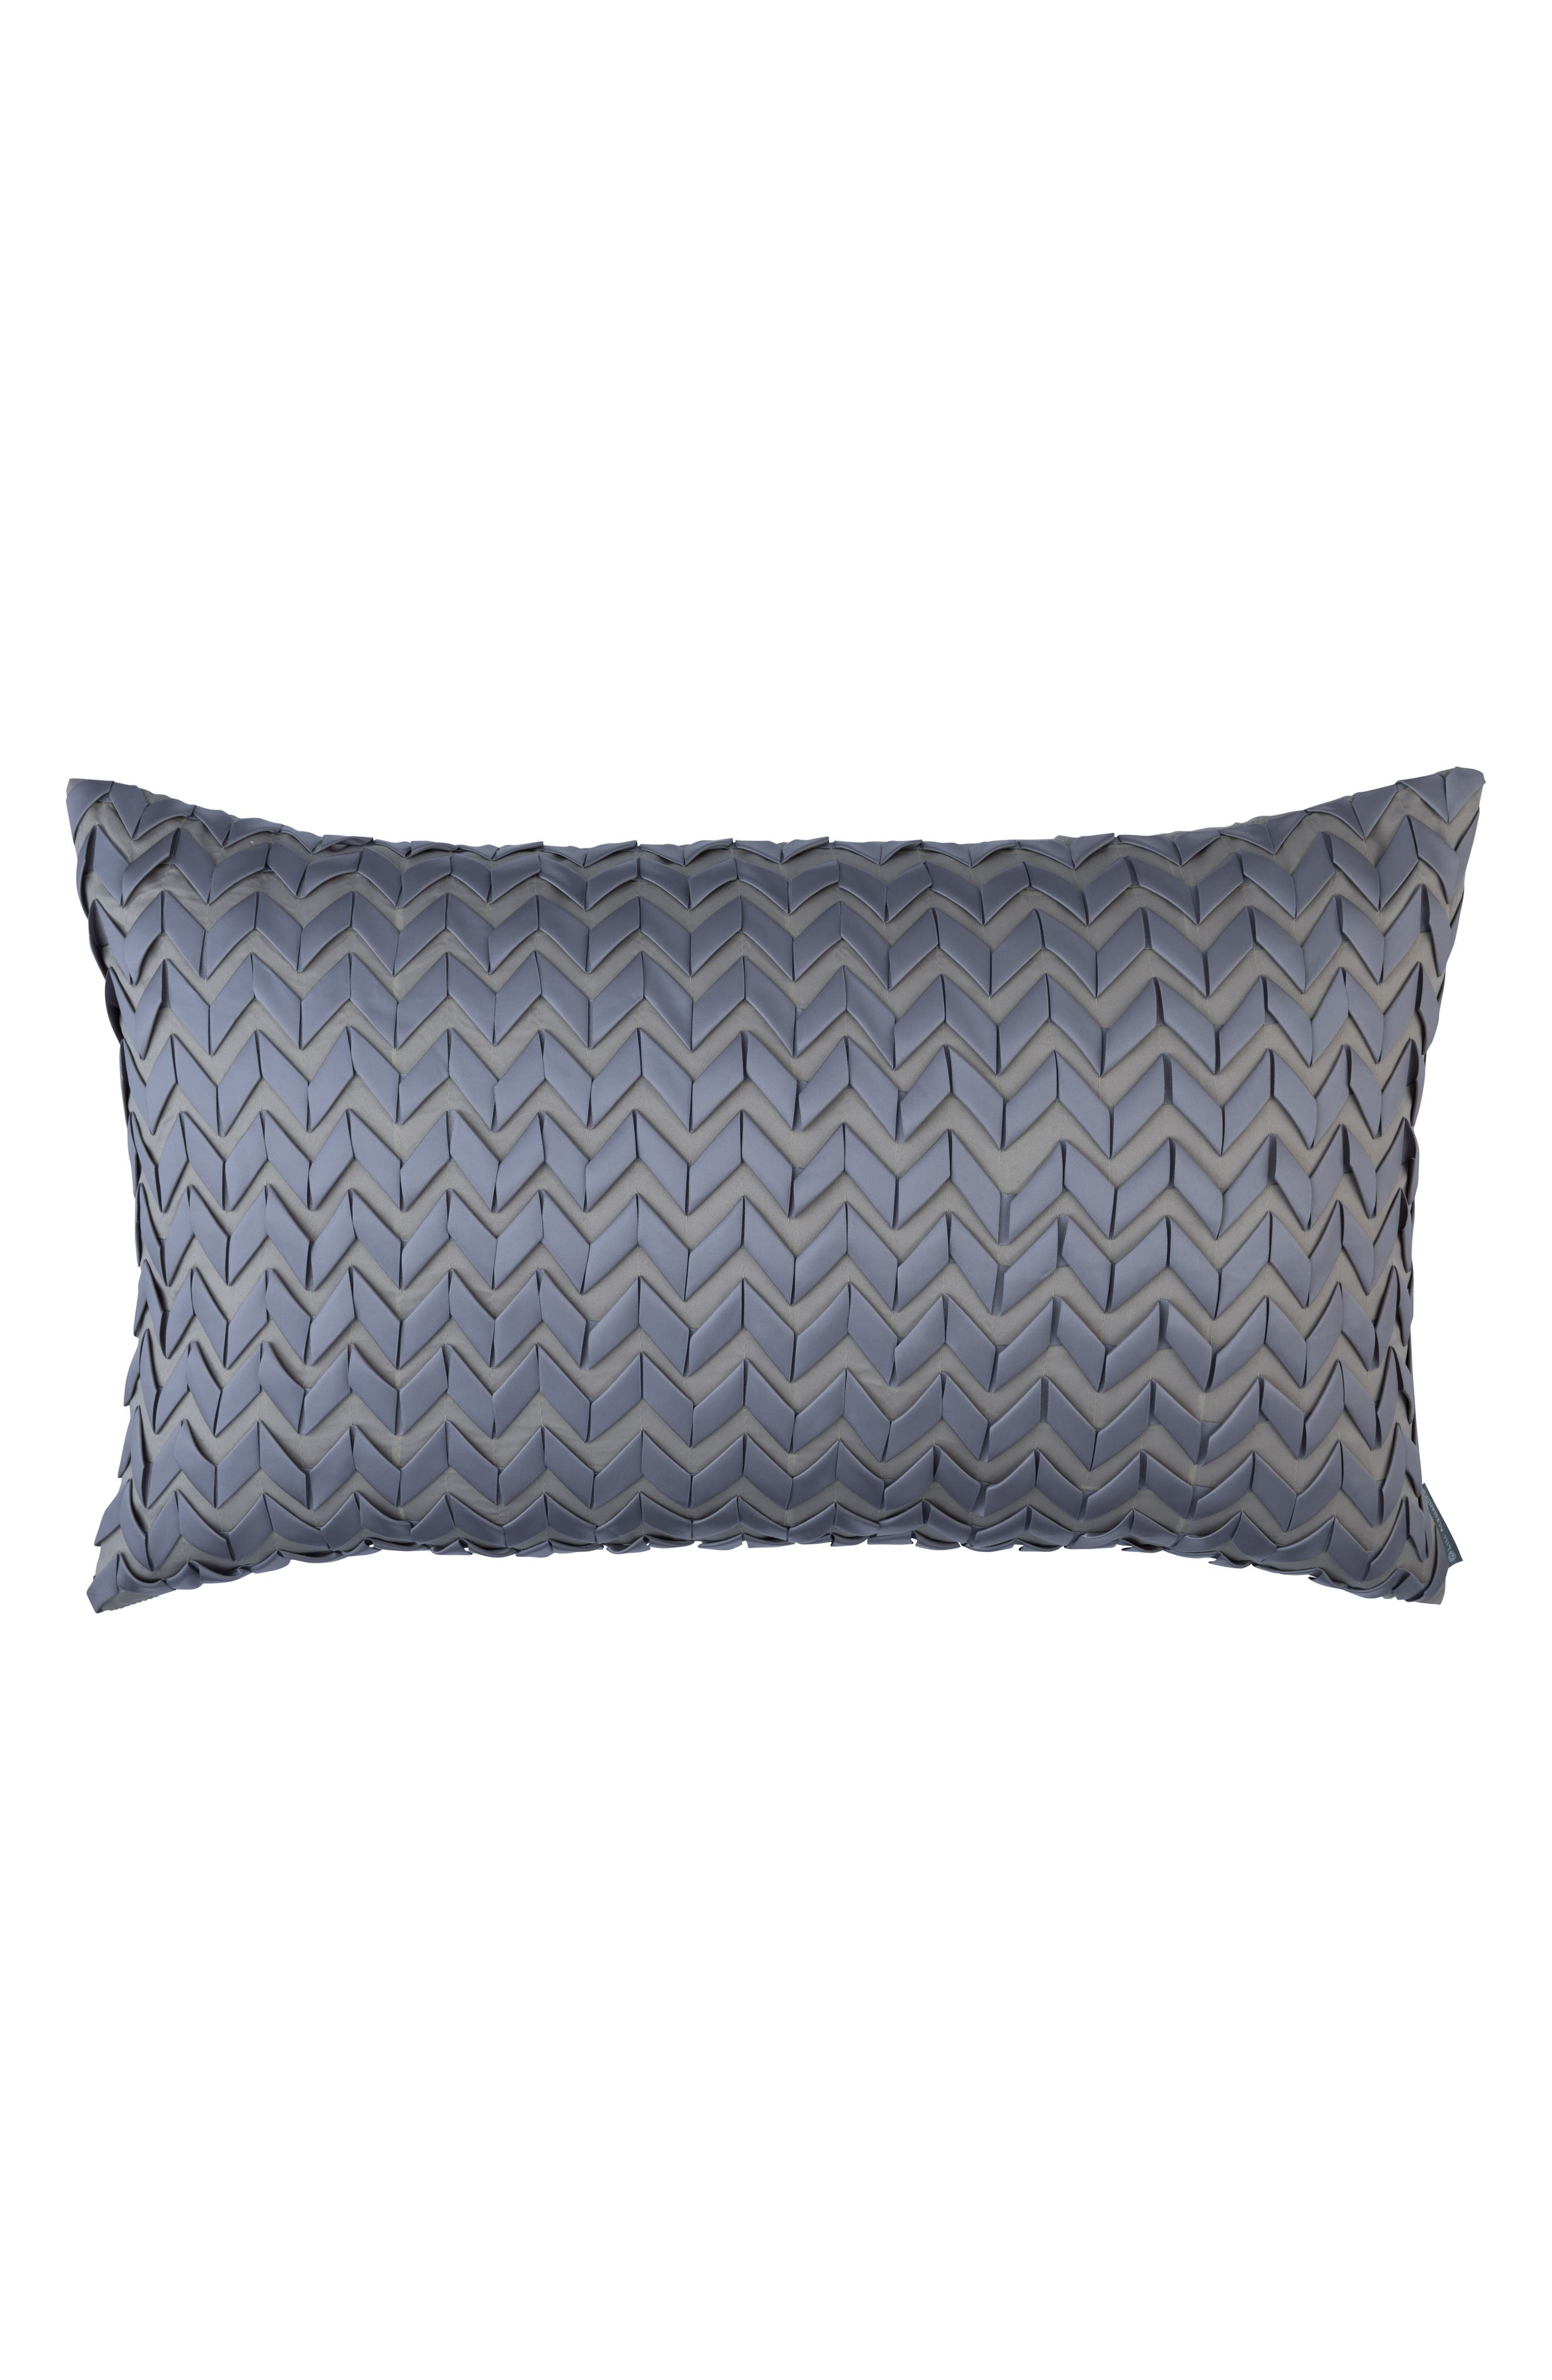 Ultra Ribbon Large Accent Pillow,                         Main,                         color, Gray